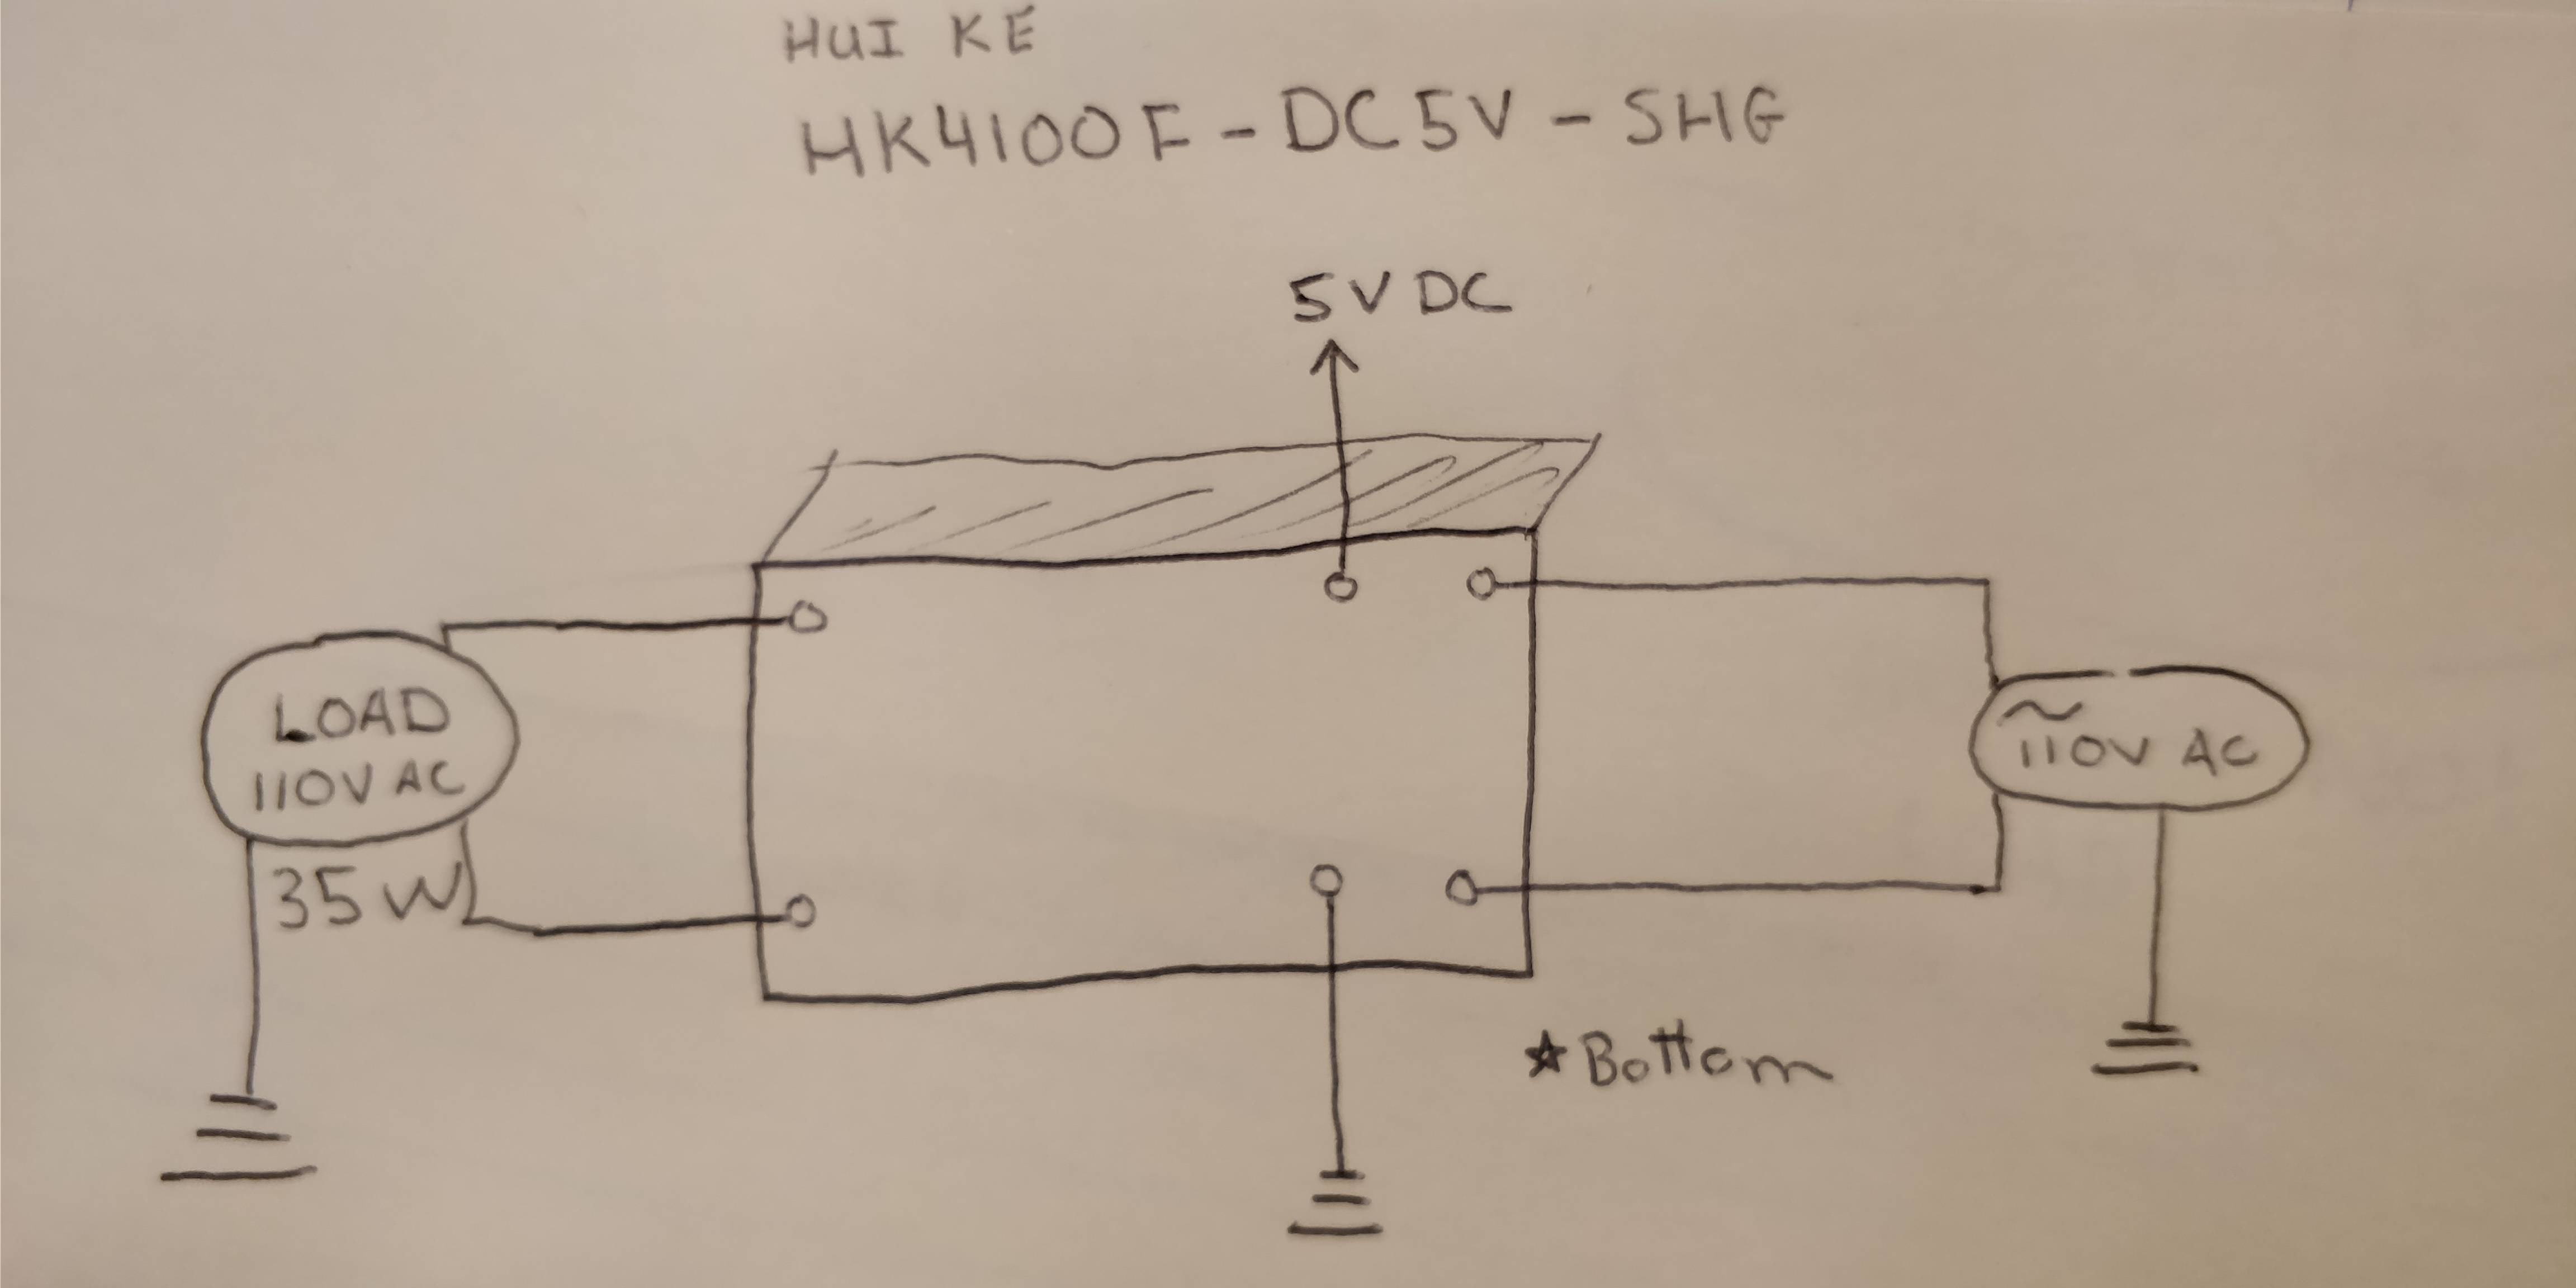 How To Wire A 5V 6-pin Relay Switching 110V AC